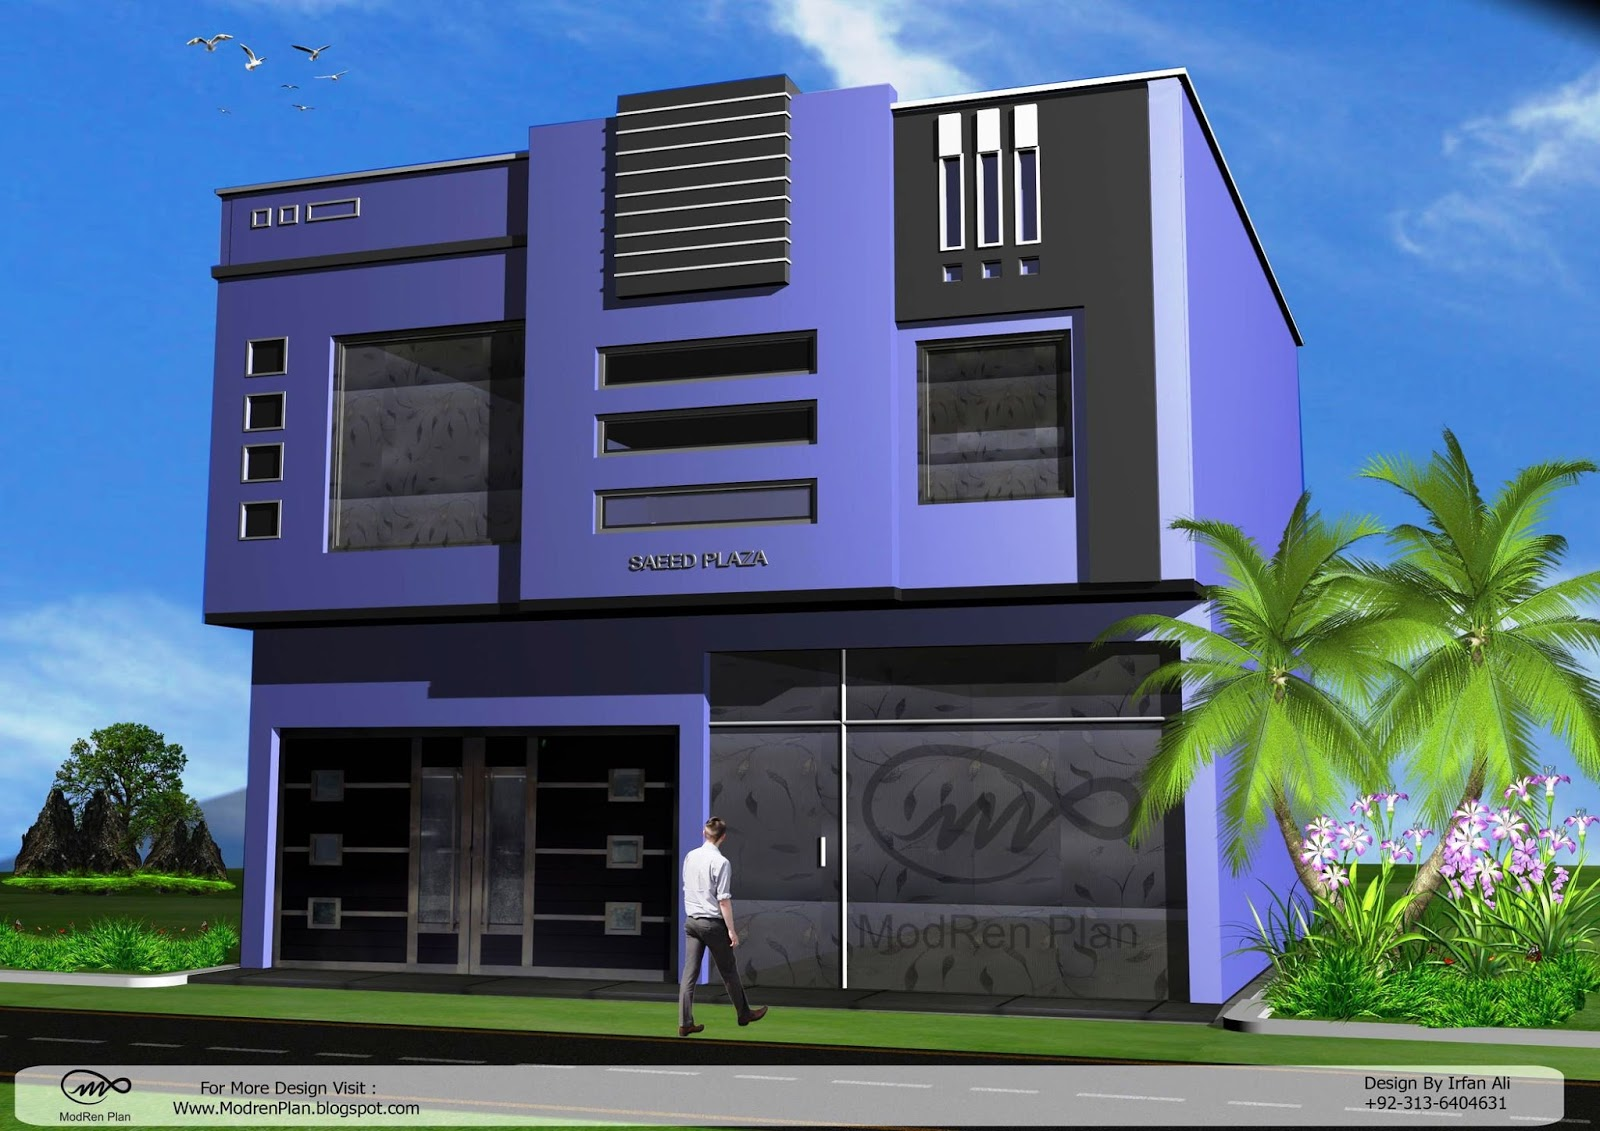 Modern commercial building designs and plaza front elevation for House building design ideas